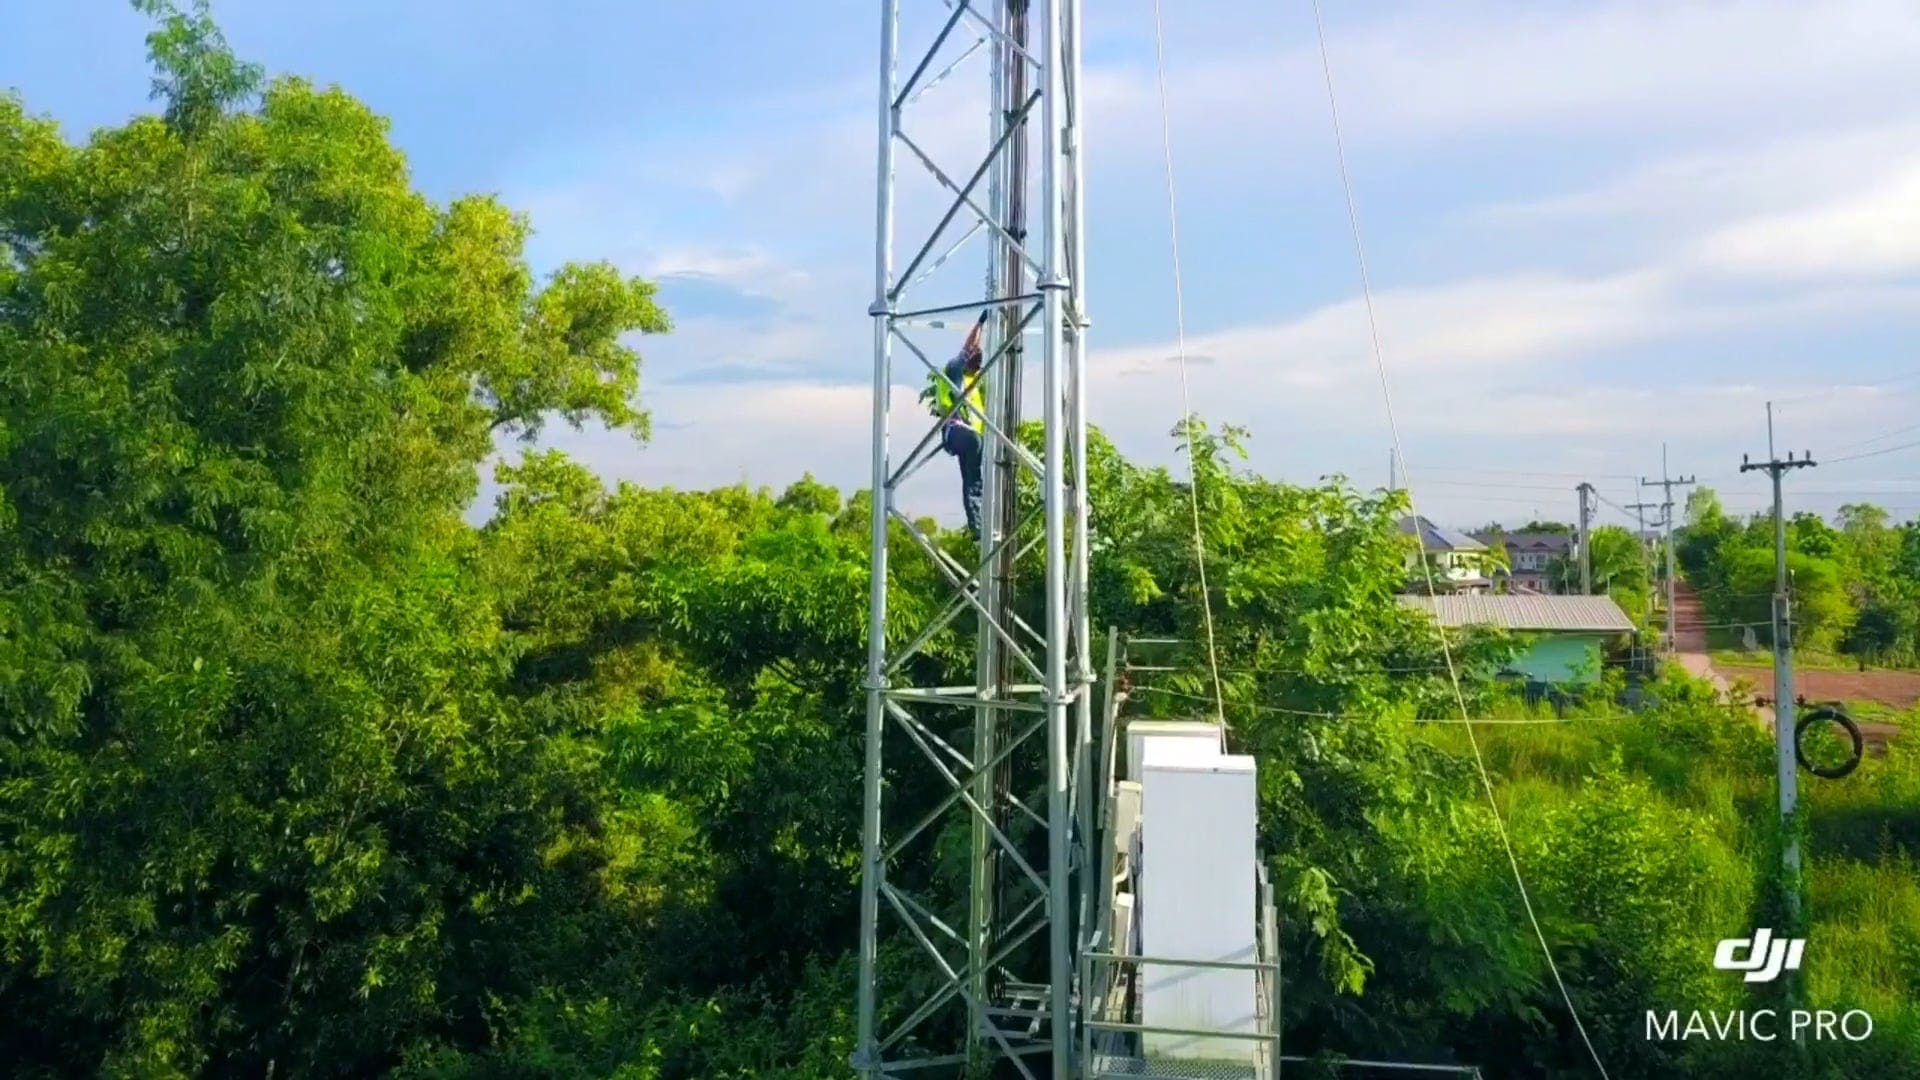 Man Working On A Tower